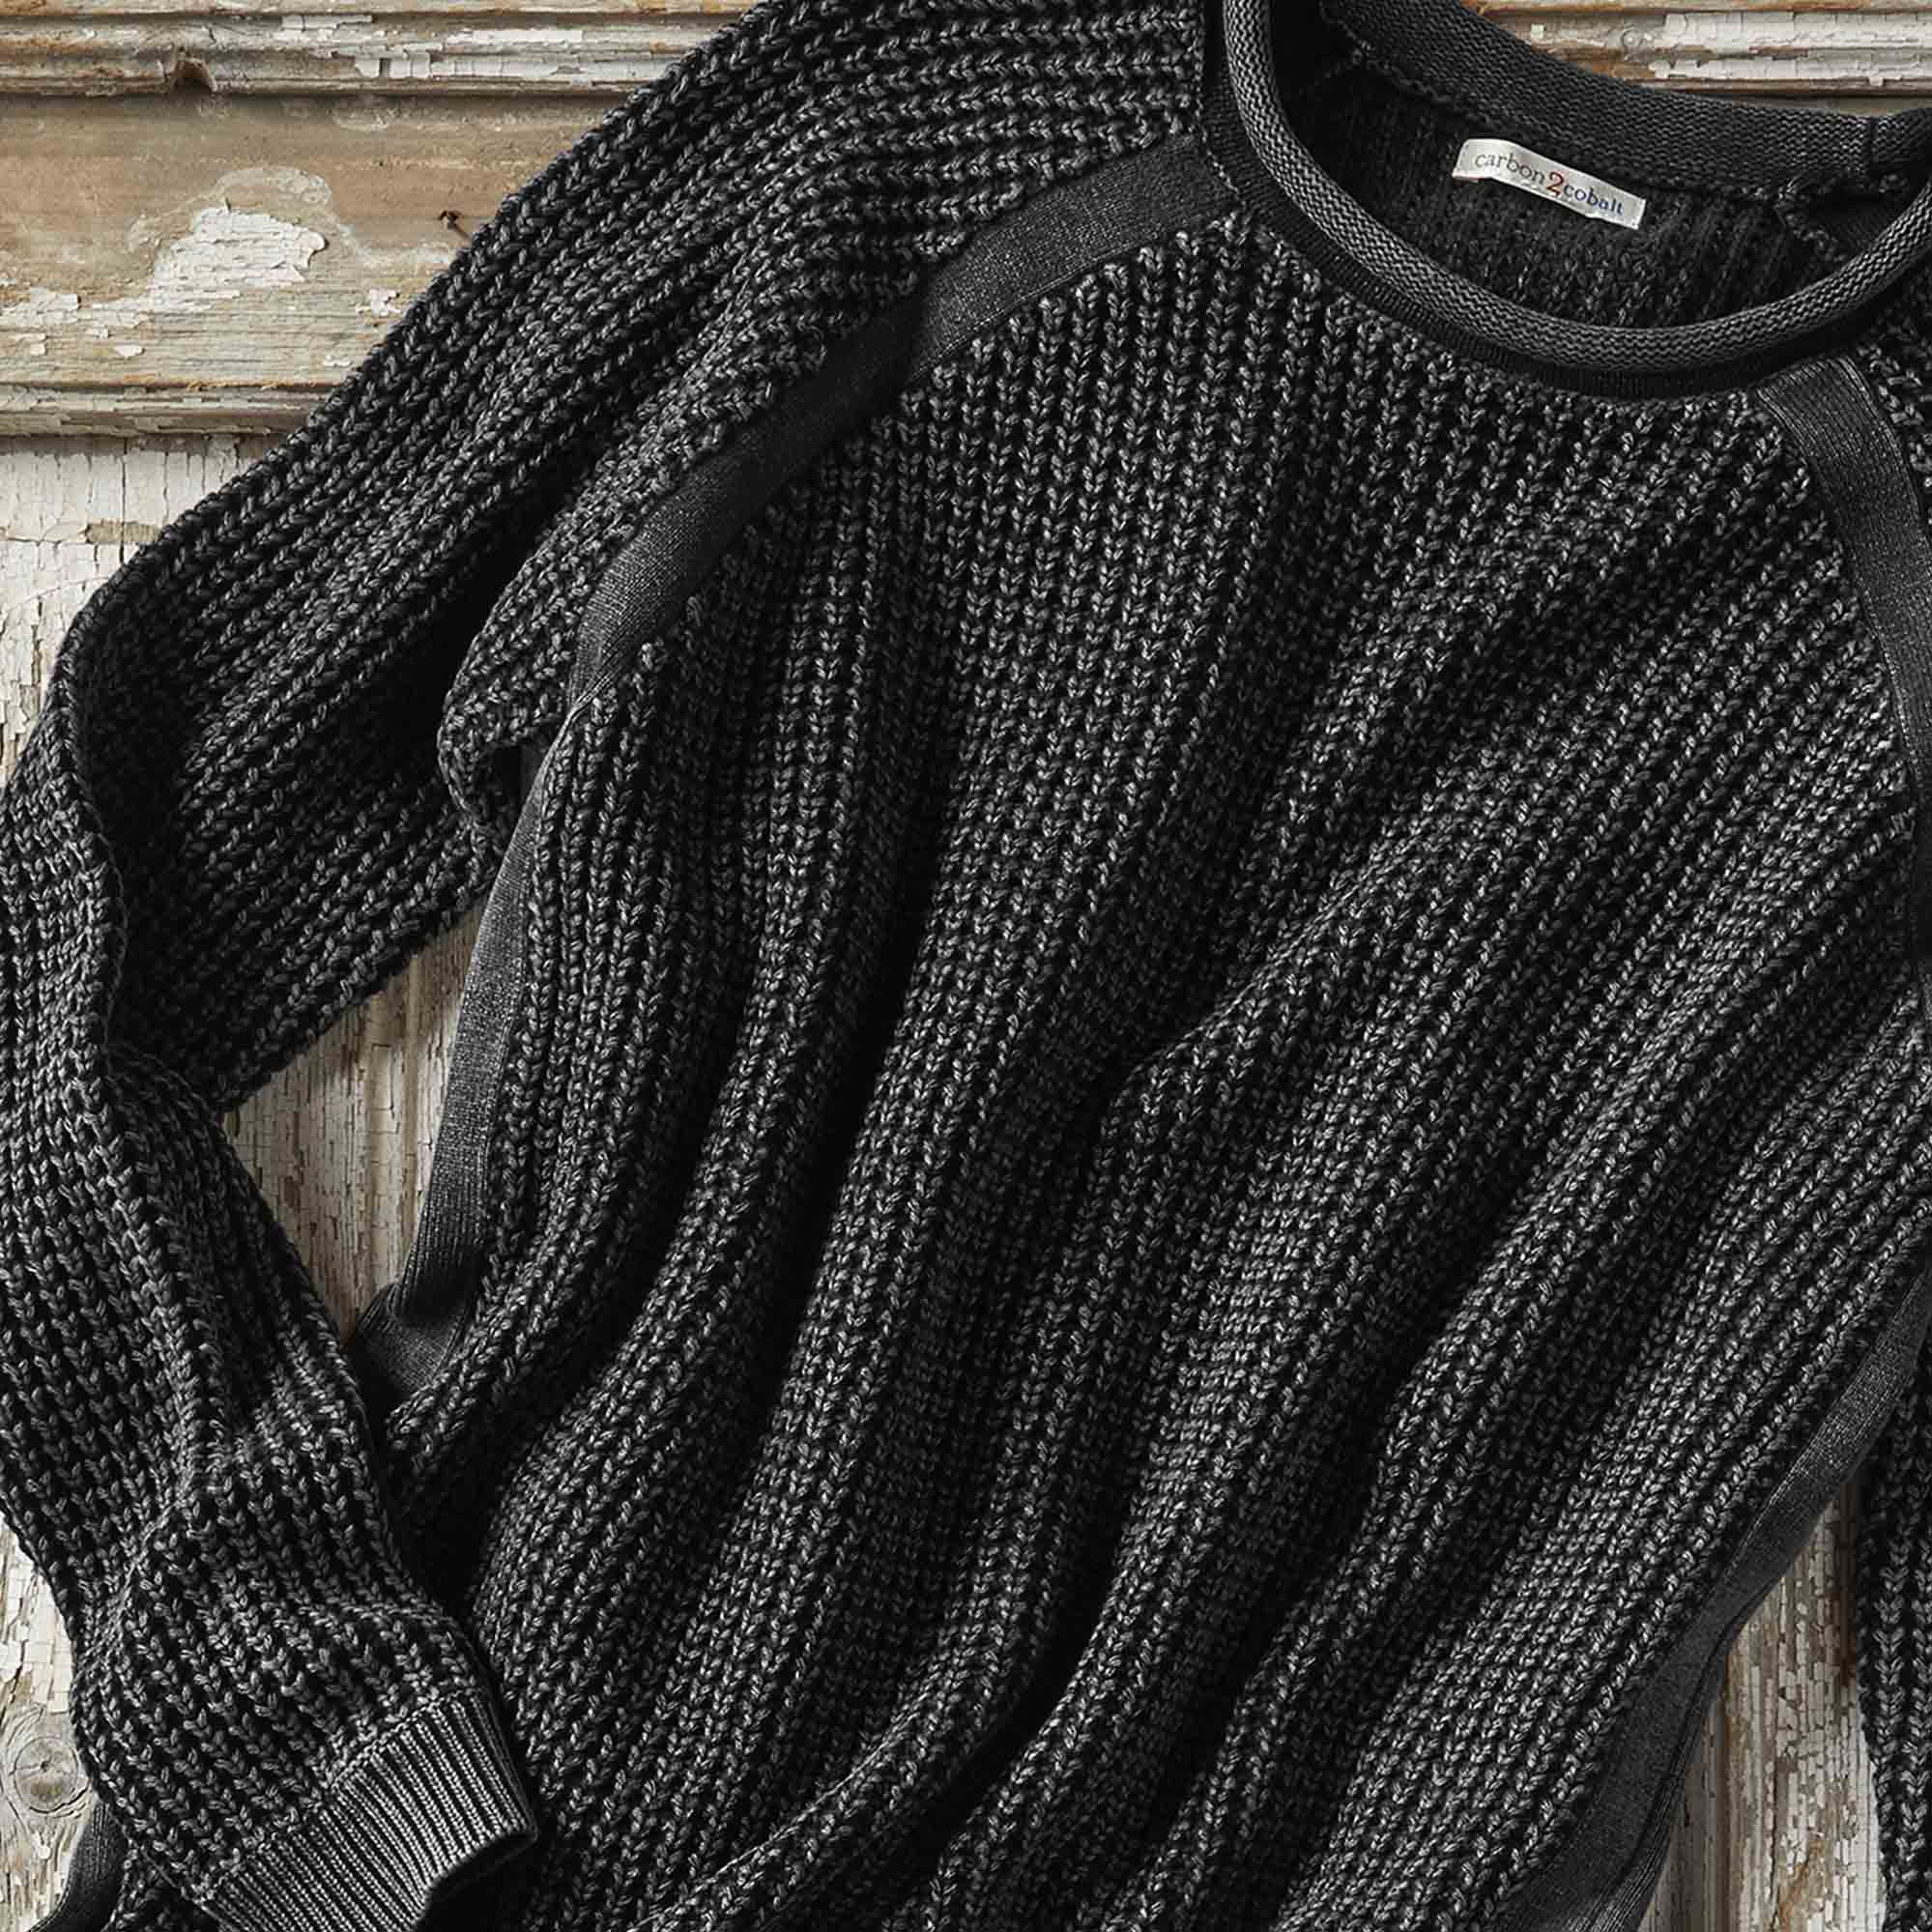 Riverstone Sweater - Made for Every Wear